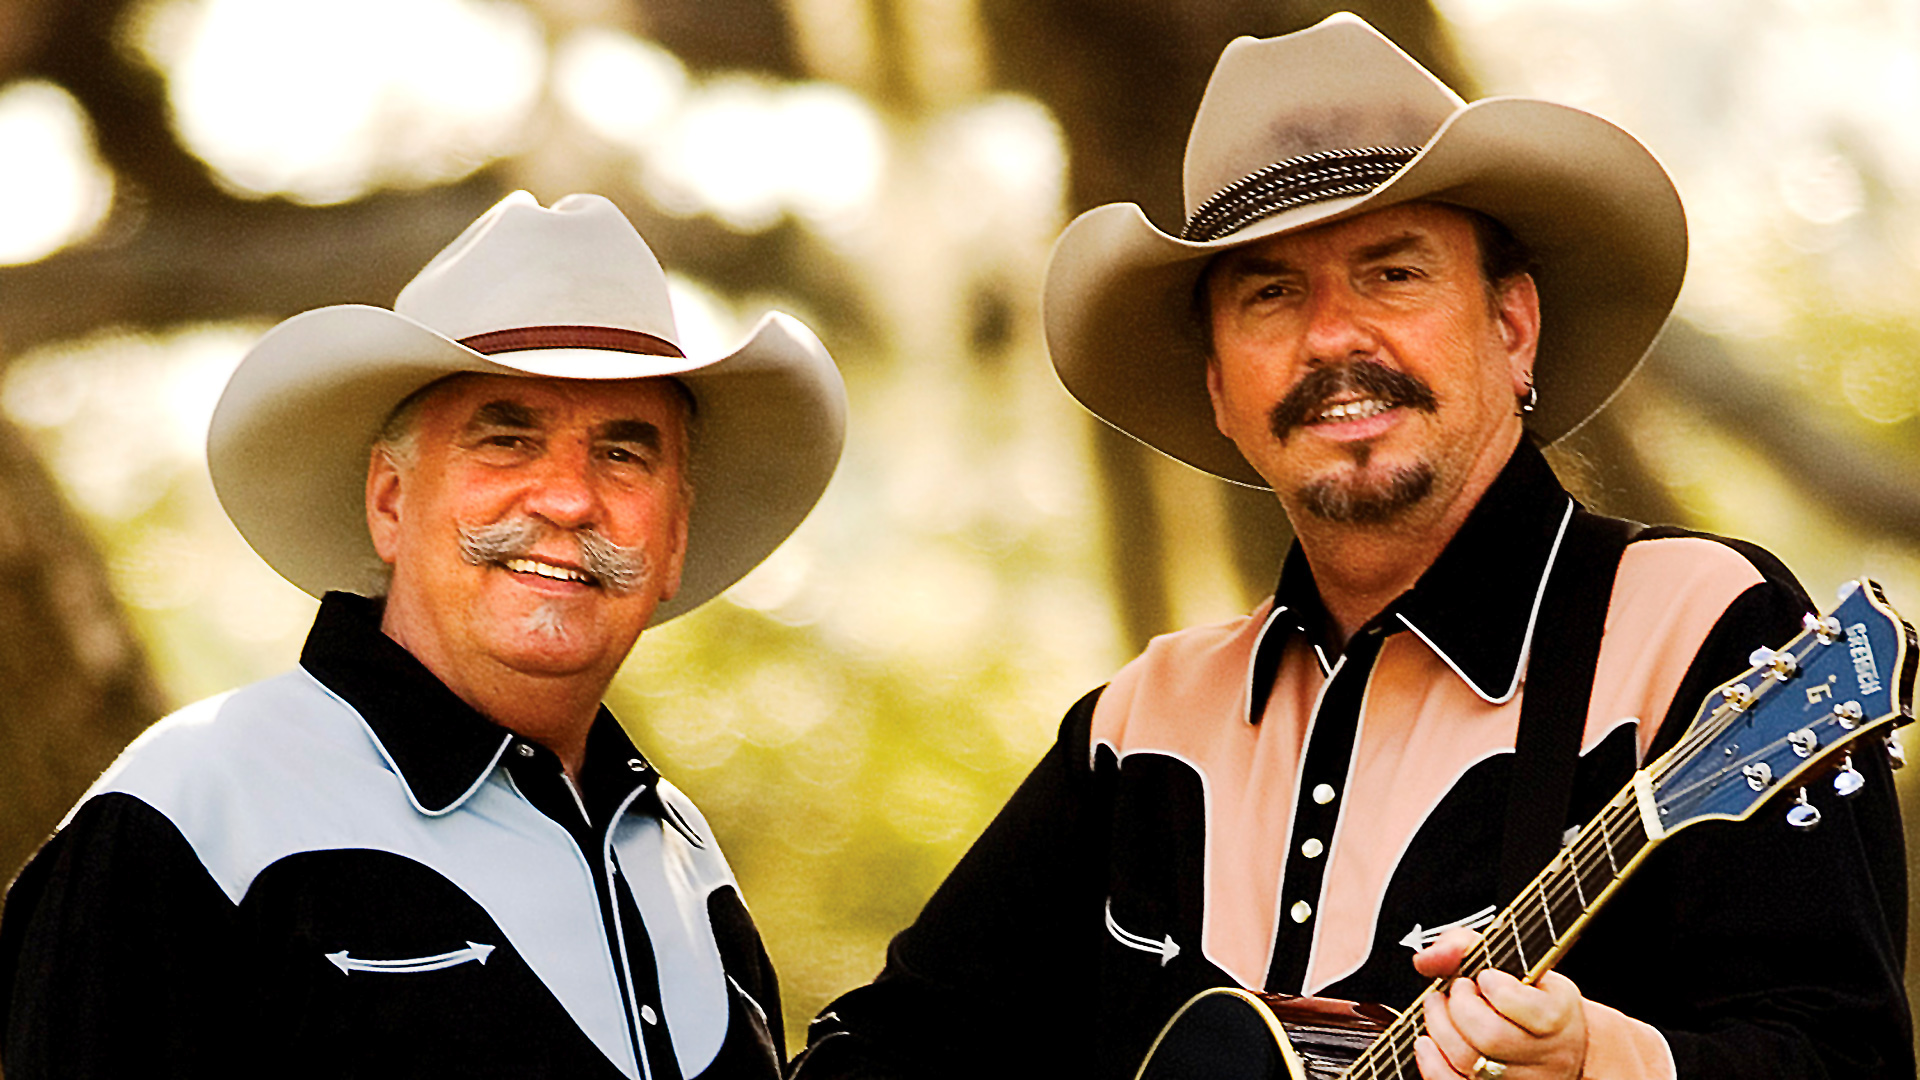 When I'm Away From You av The Bellamy Brothers